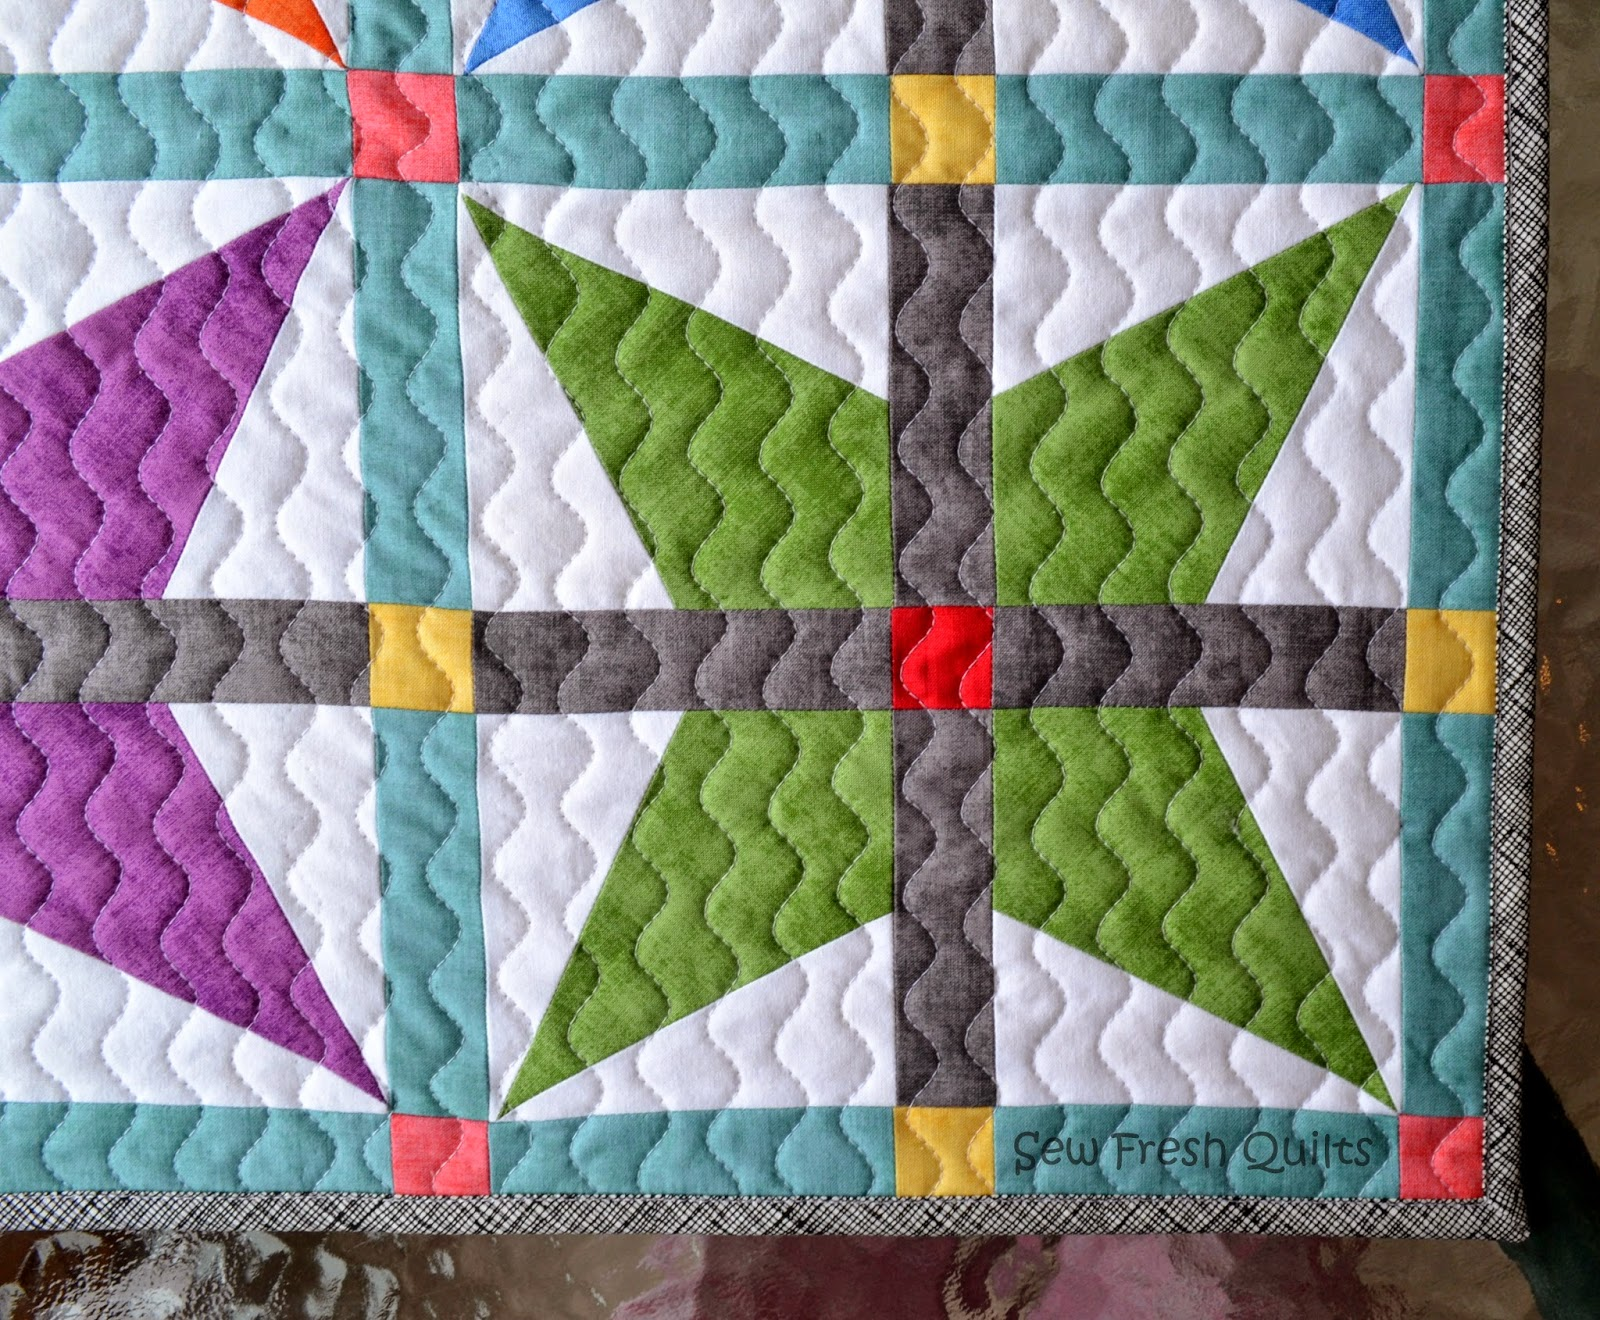 Marking Quilting Designs On Your Top : Sew Fresh Quilts: Top 10 Tips for New Quilters - Quilting with your Walking Foot